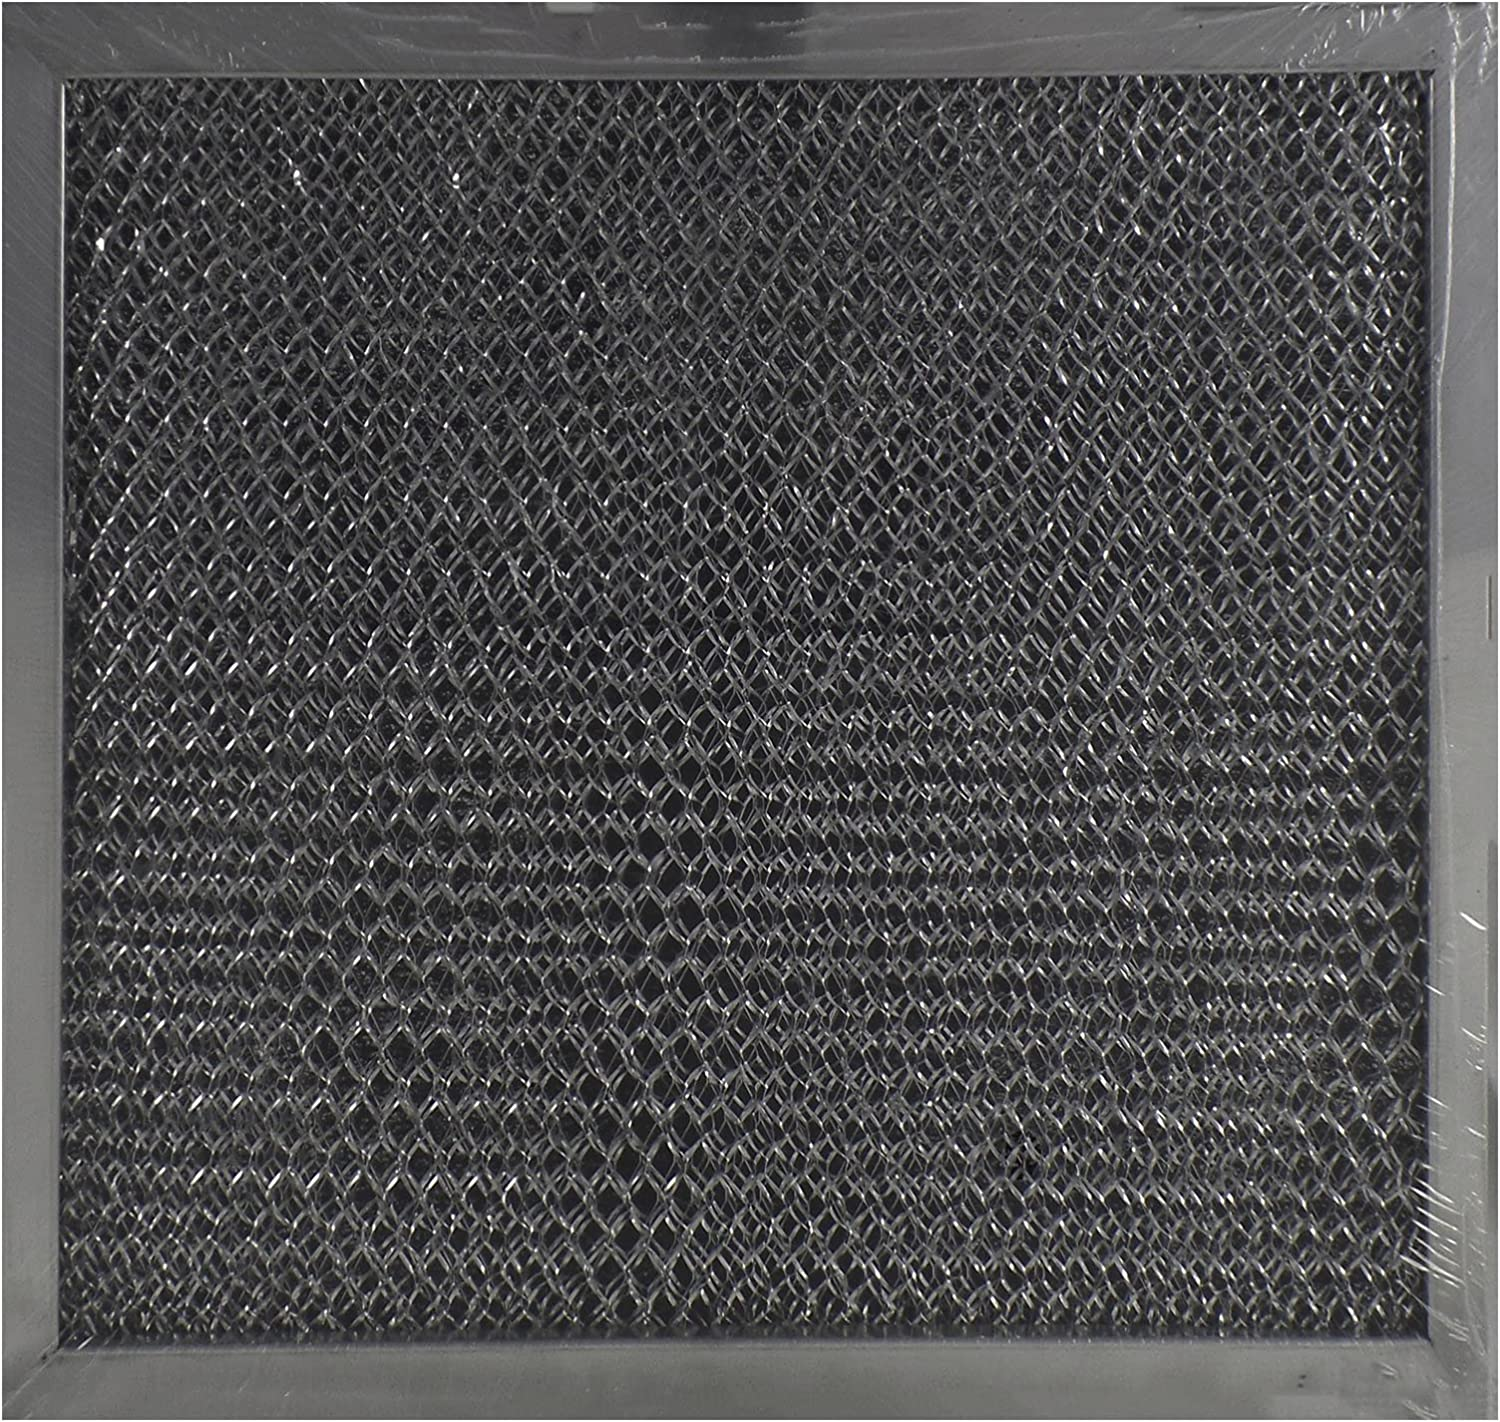 Air Filter Factory Compatible Replacement for Broan Nutone 41F, 97007696, 97005687 Grease Mesh Charcoal Carbon Combo Range Hood Filter 8.75 x 10.5 x .44 Inches